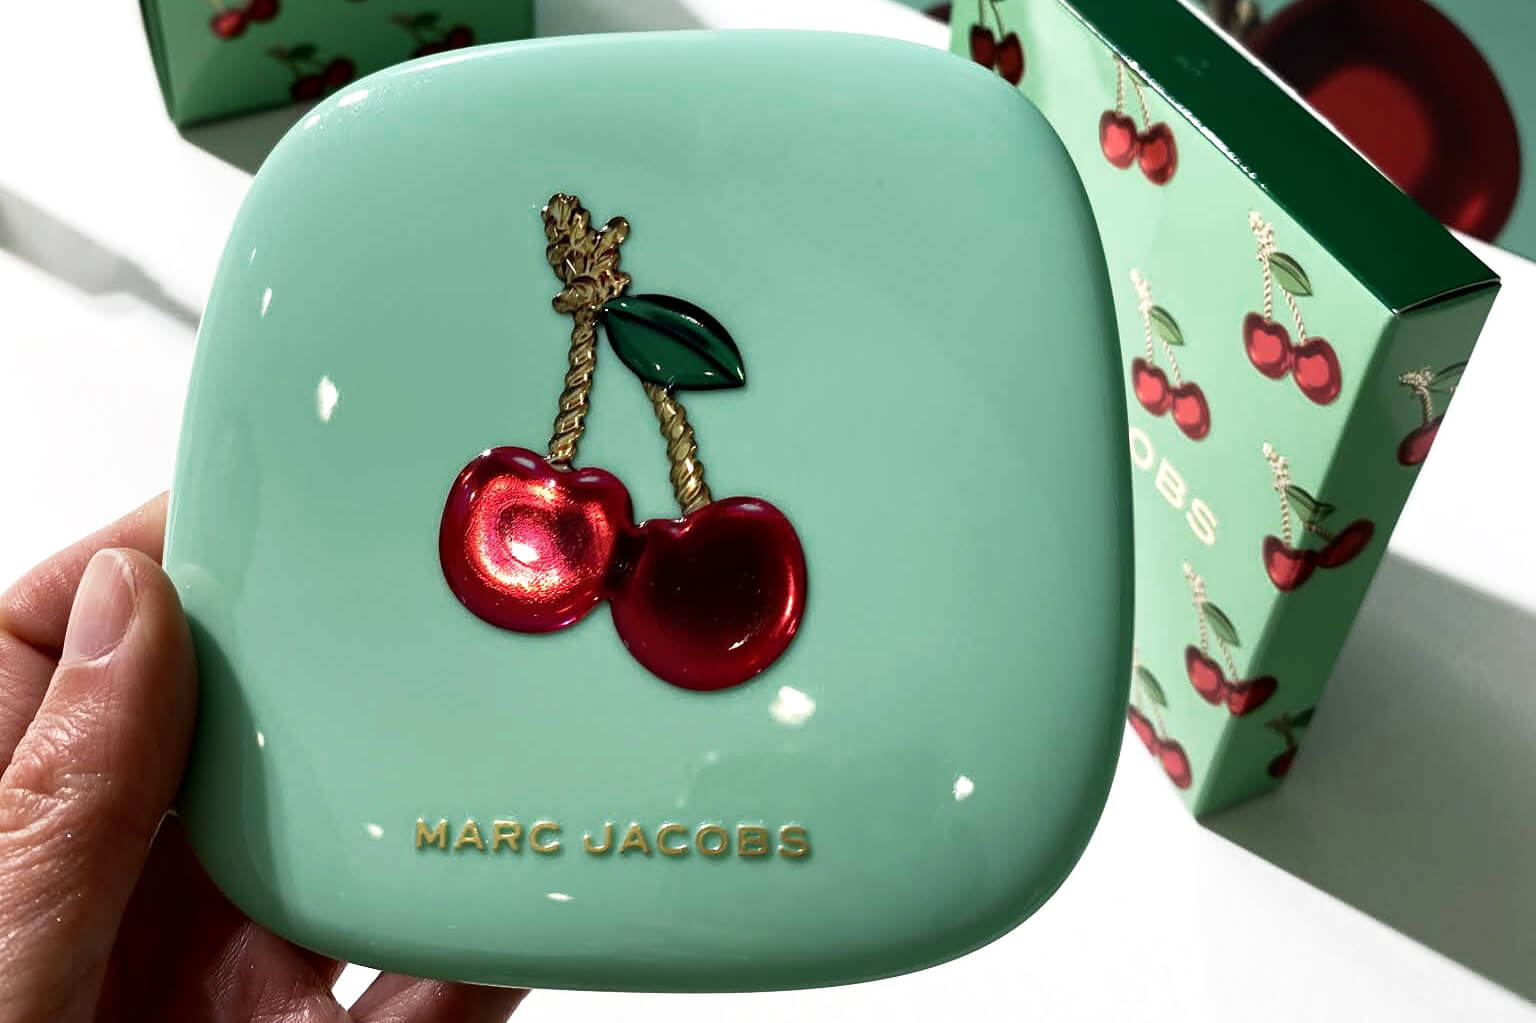 Marc Jacobs Merry Cherry Collection Noel 2020 O Mega Glaze